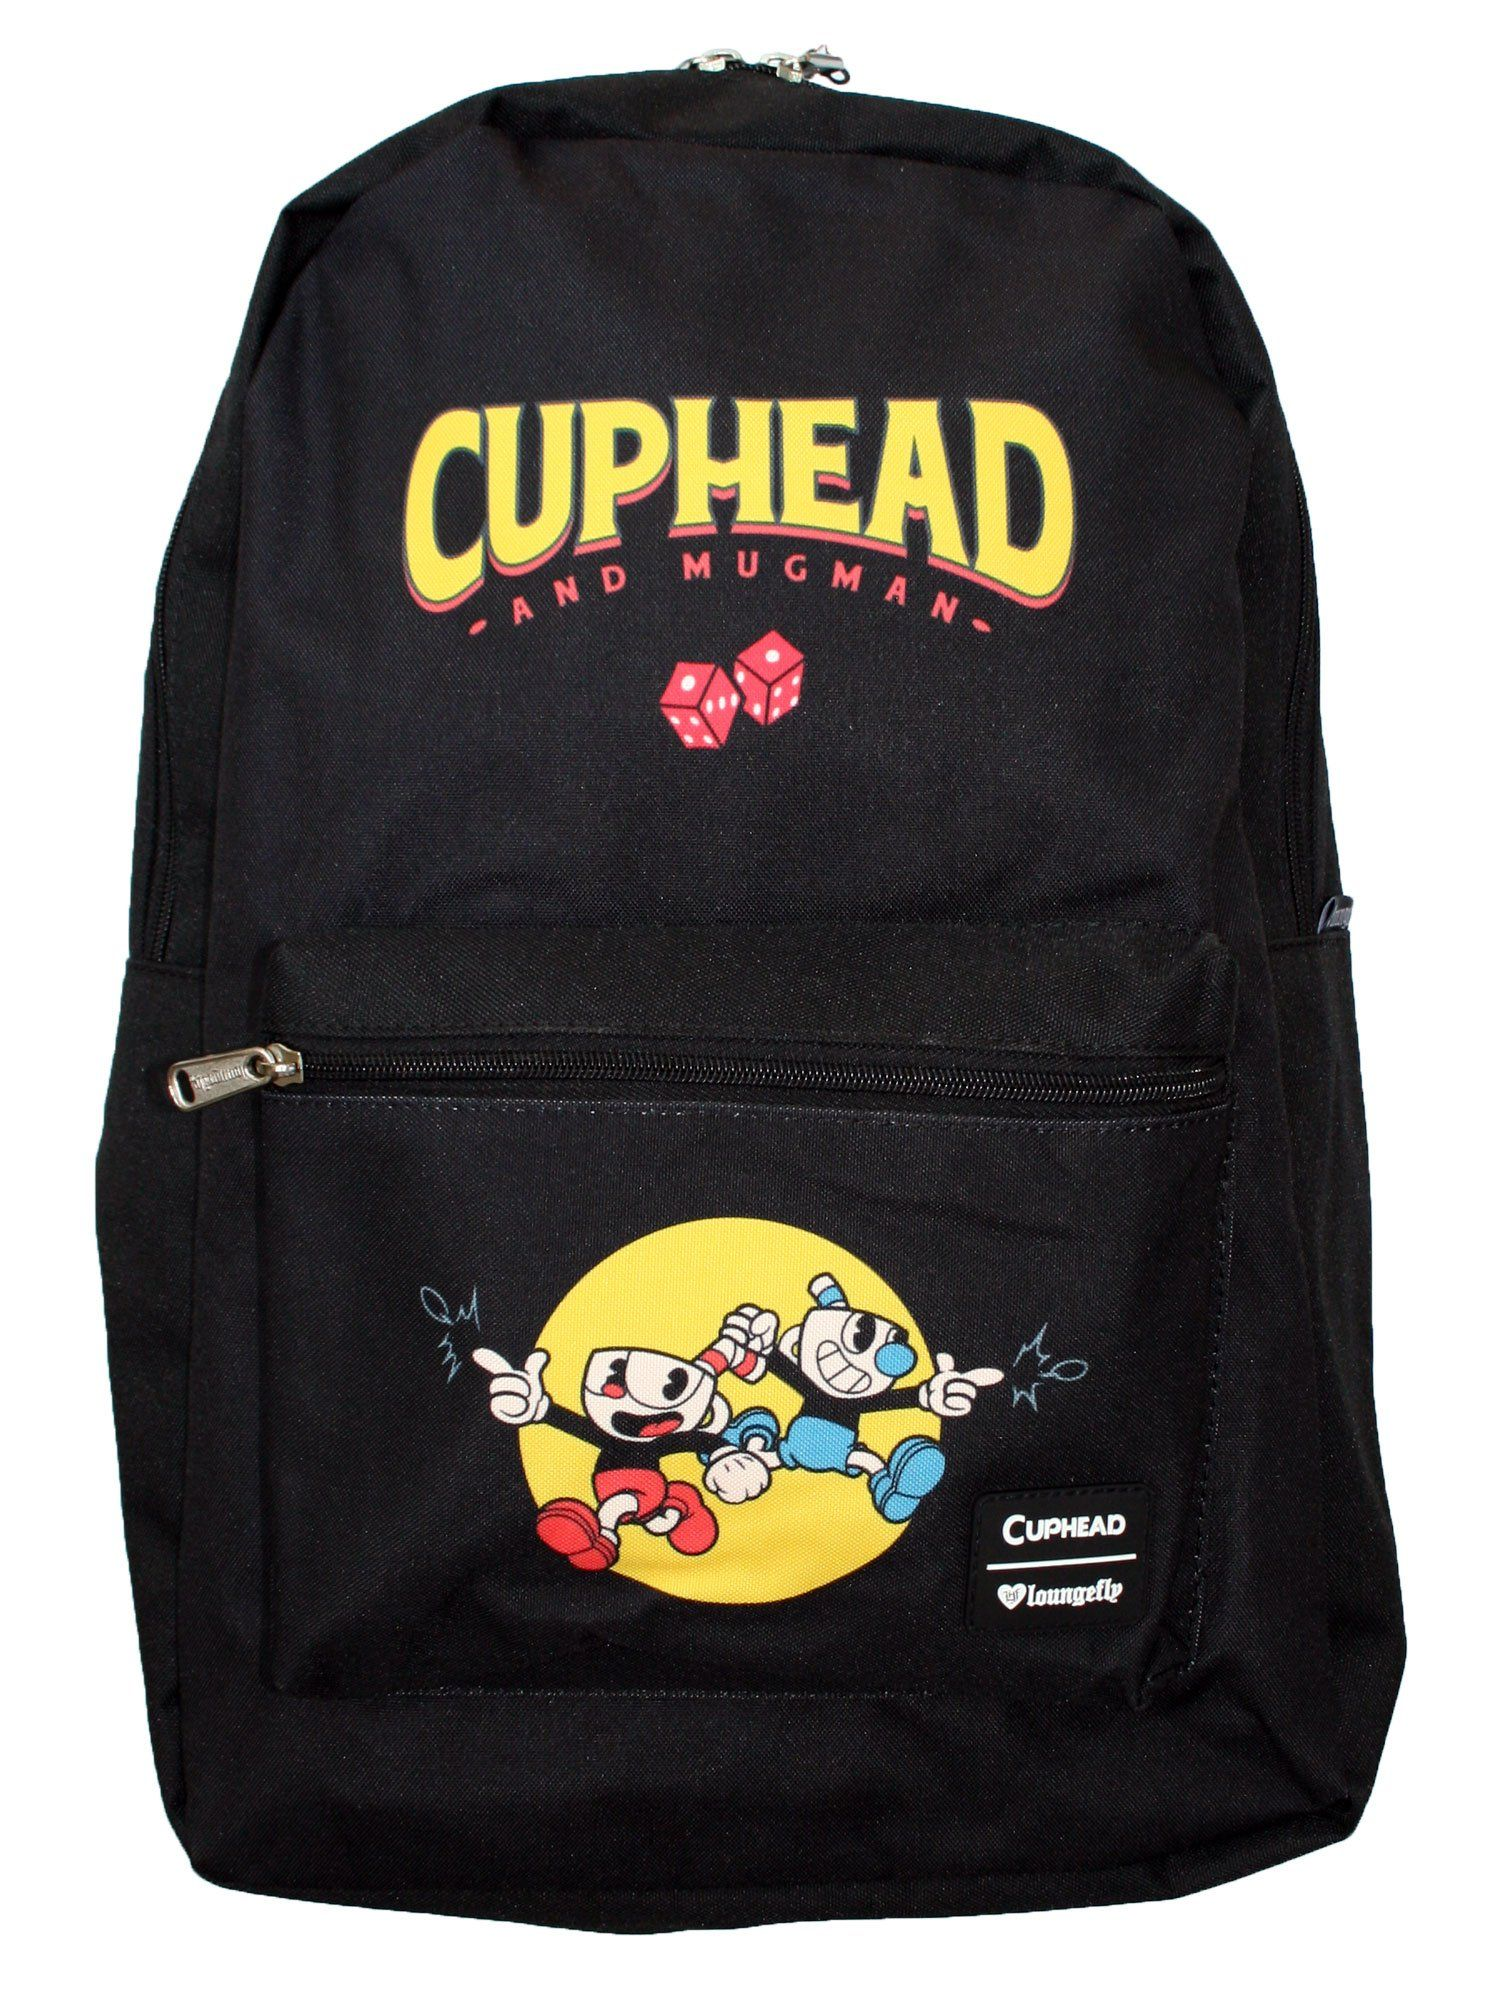 Loungefly Cuphead   Mugman Deal with the Devil Laptop School Backpack bd9215dbdc178